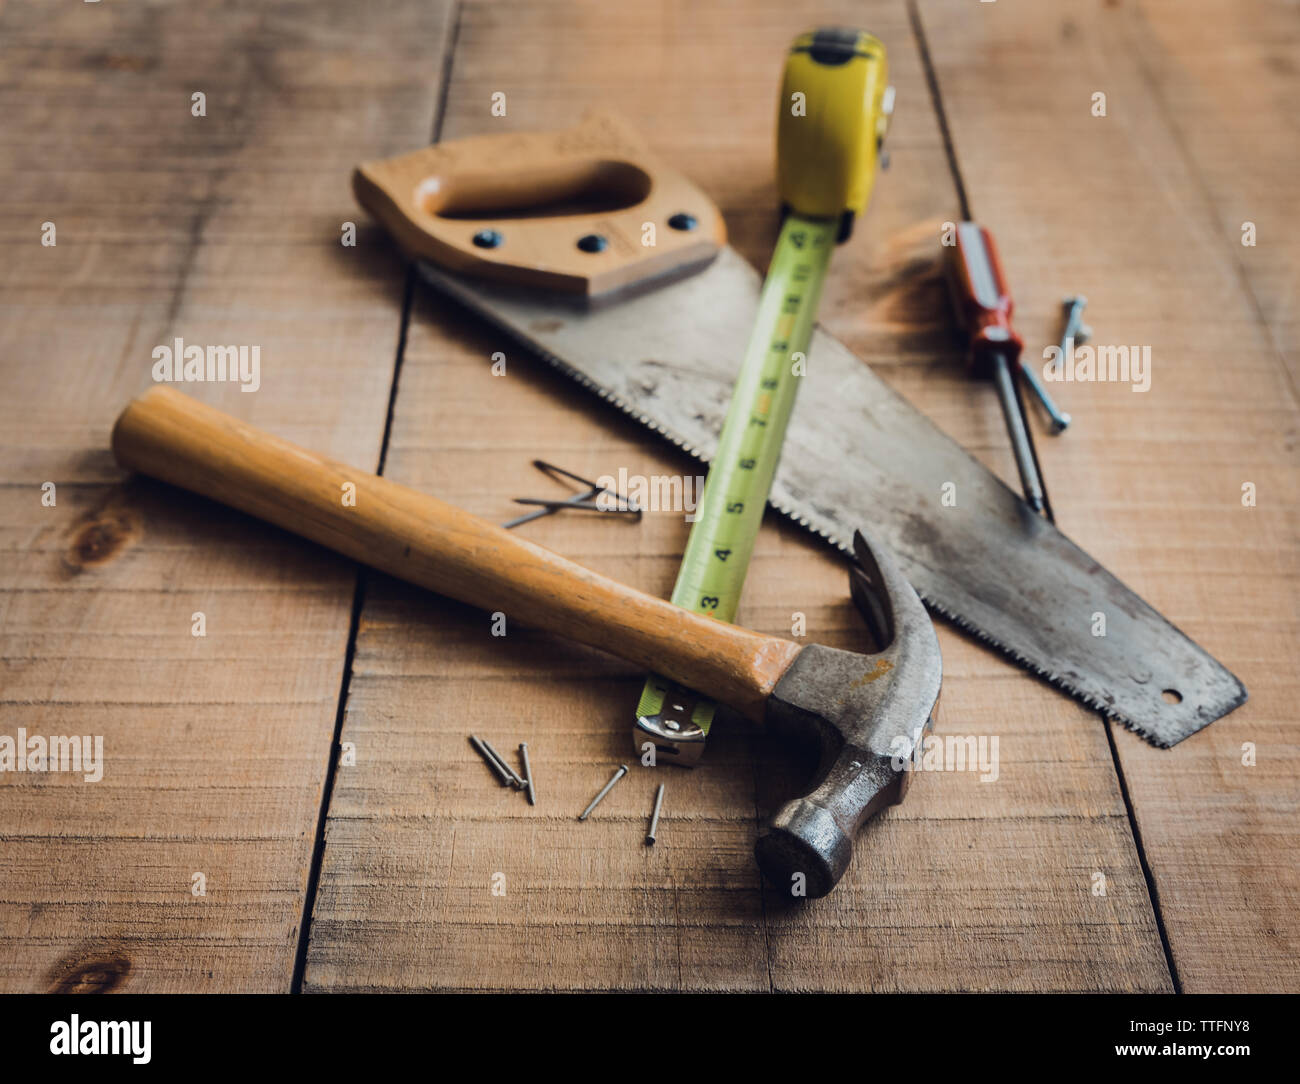 Woodworking tools scattered on a wooden table. - Stock Image